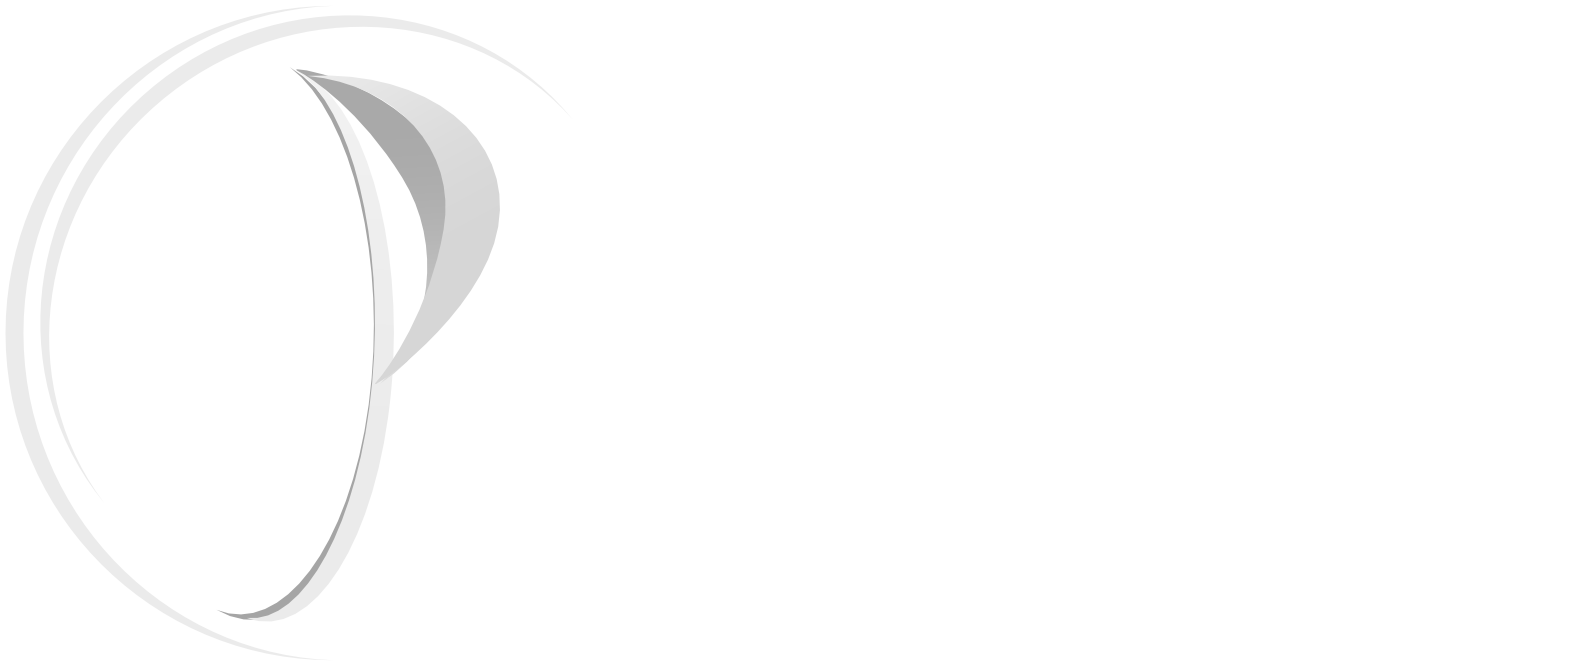 Parvin Asset Management